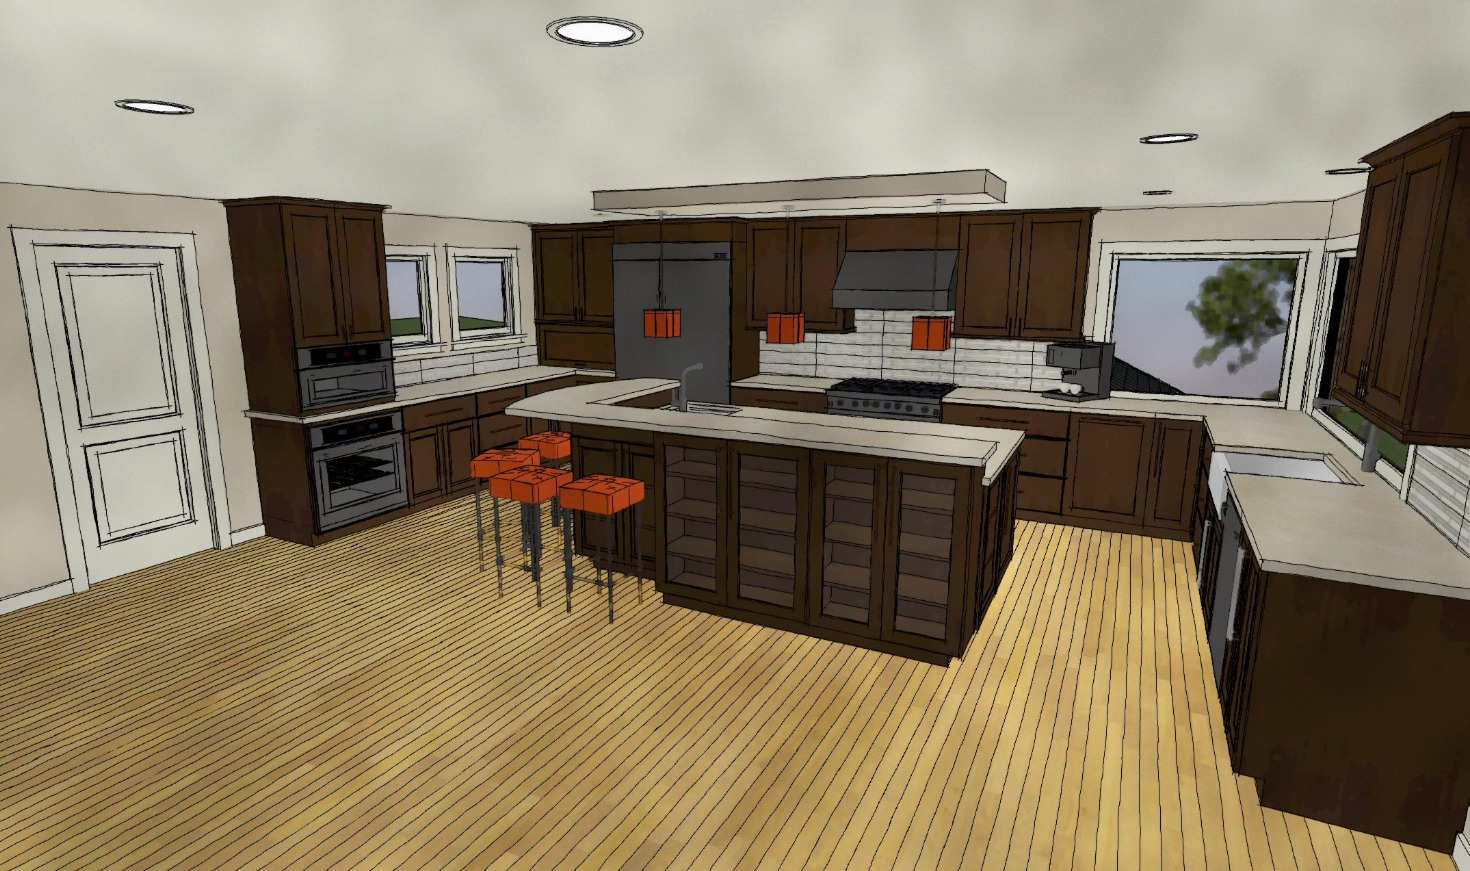 Kitchen concept drawing